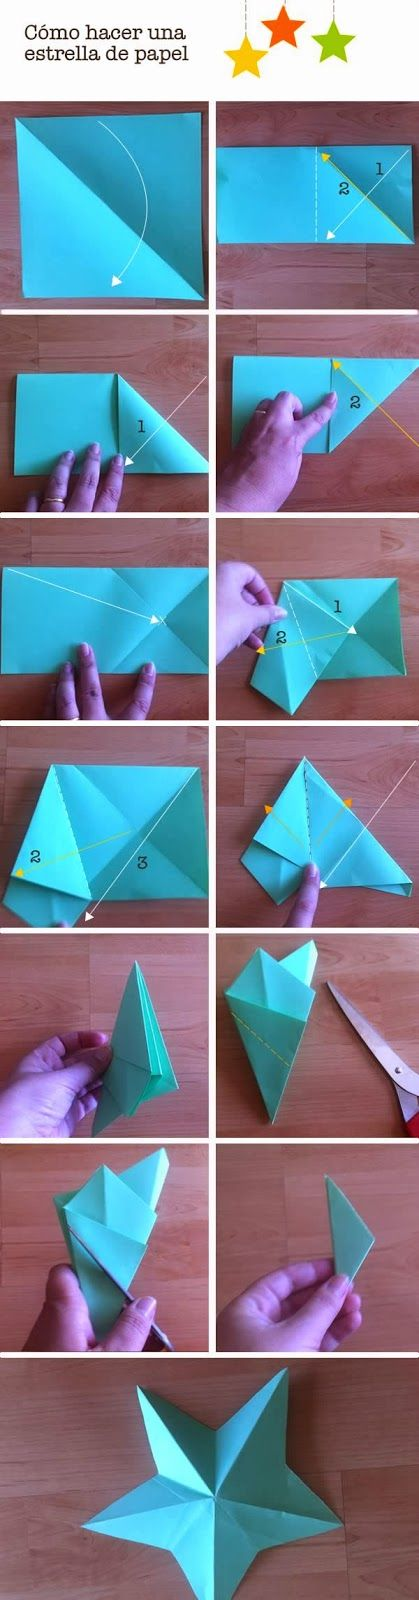 oriland magic star instructions